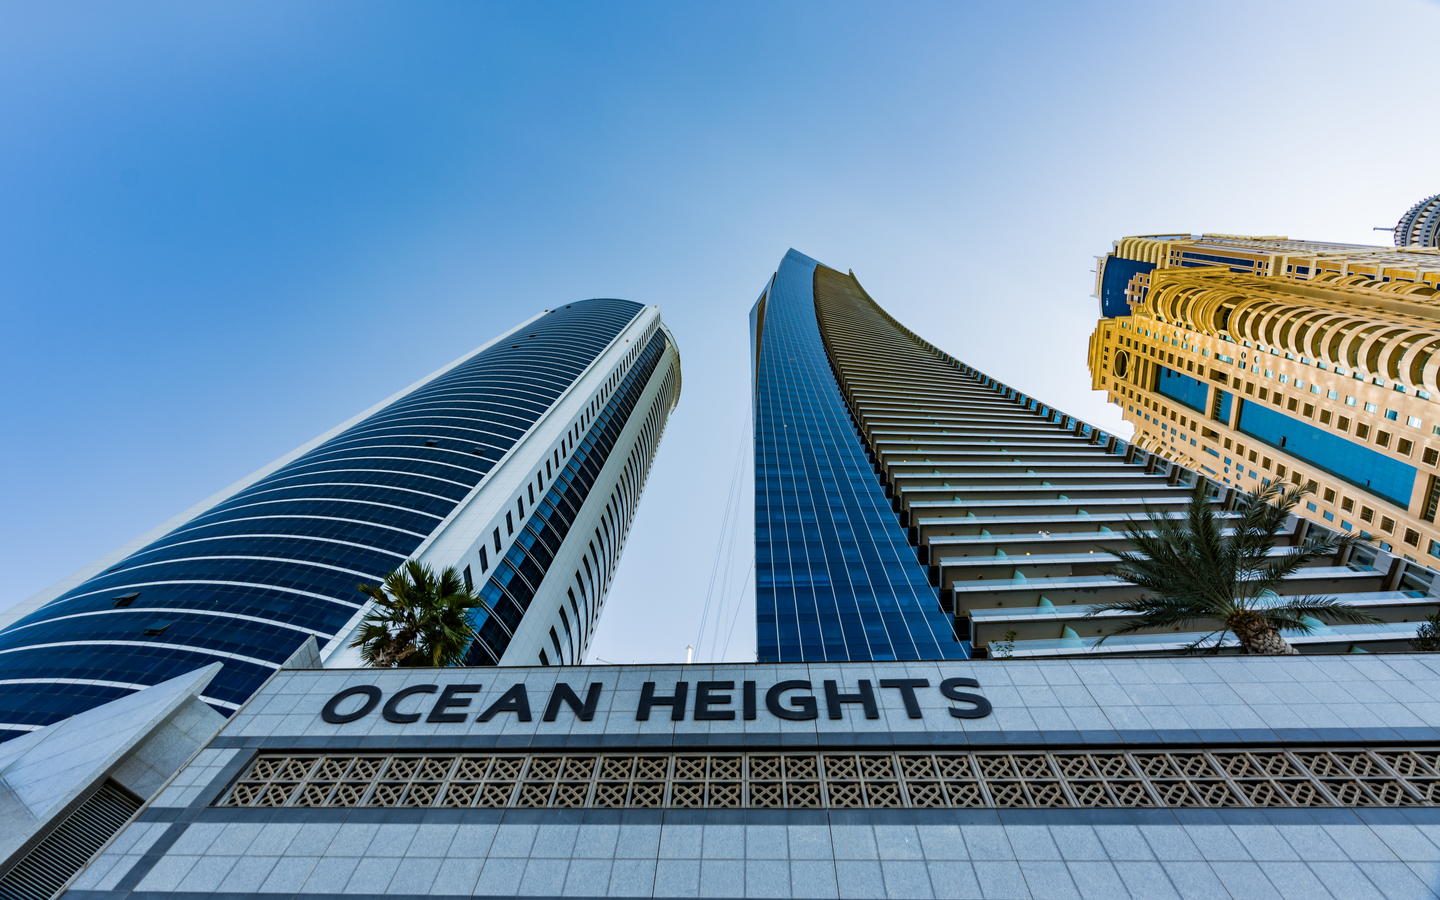 Designed by Aedas, Ocean Heights is one of the tallest residential buildings in Dubai.